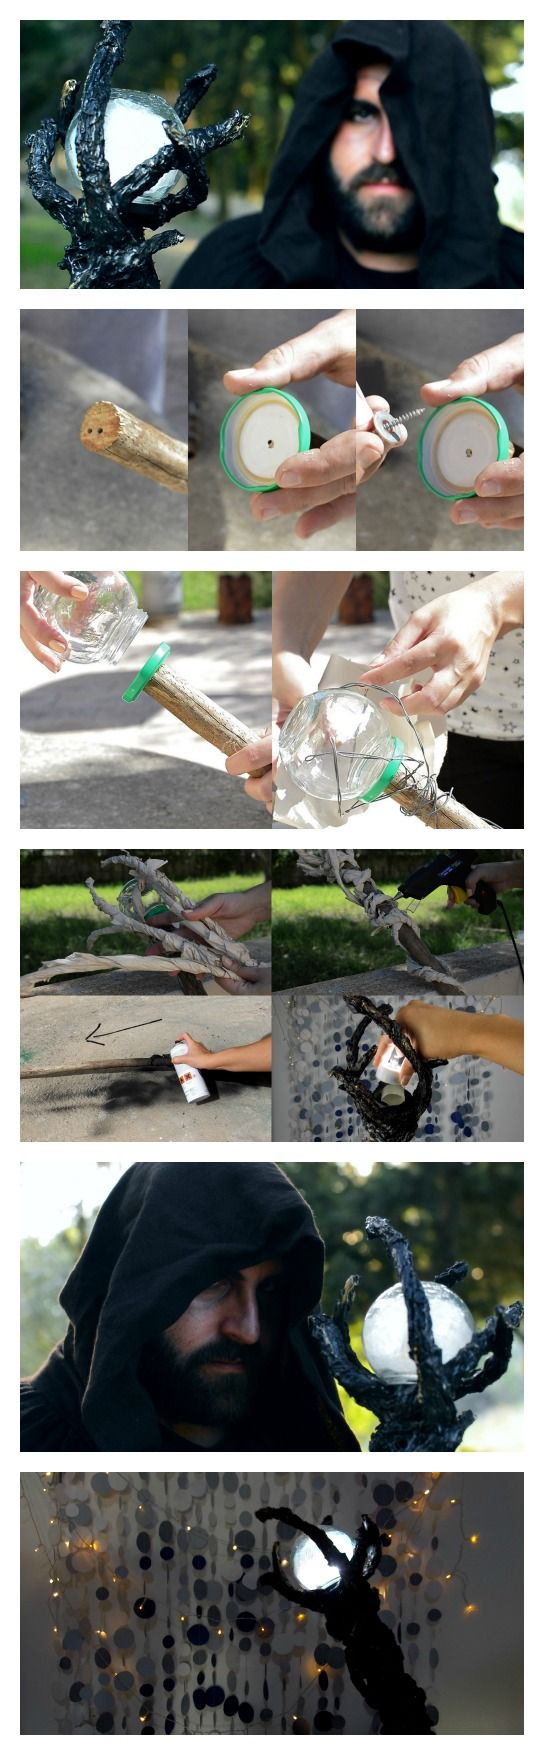 DIY illuminated wizard's staff how-to halloween costume - If Ame is going to have a staff (Just a possibility) this might be cool